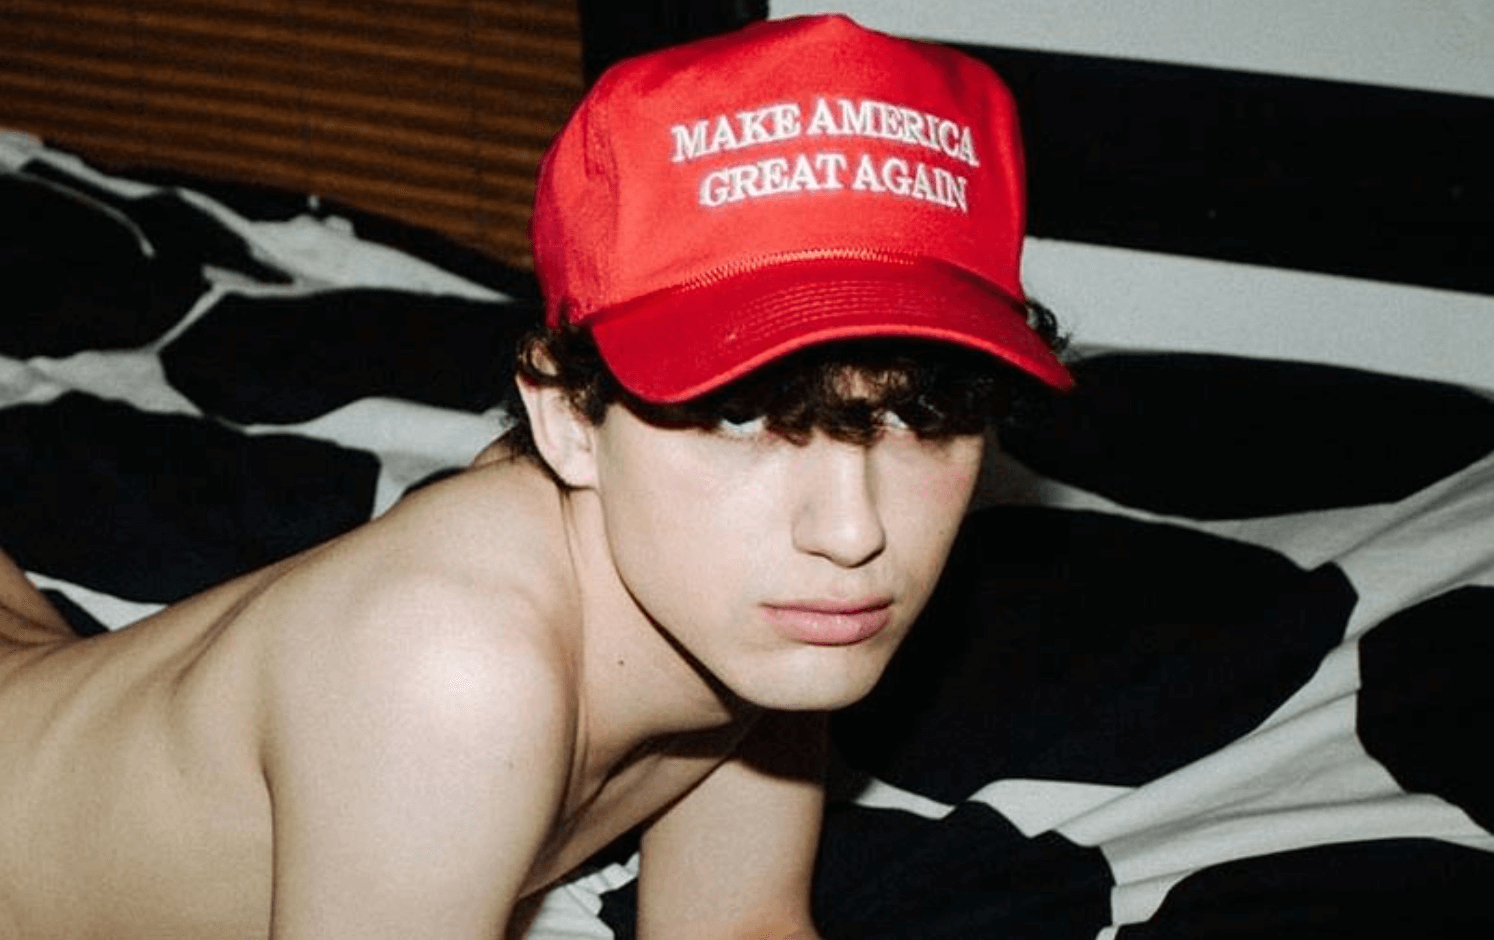 Twinks for Trump